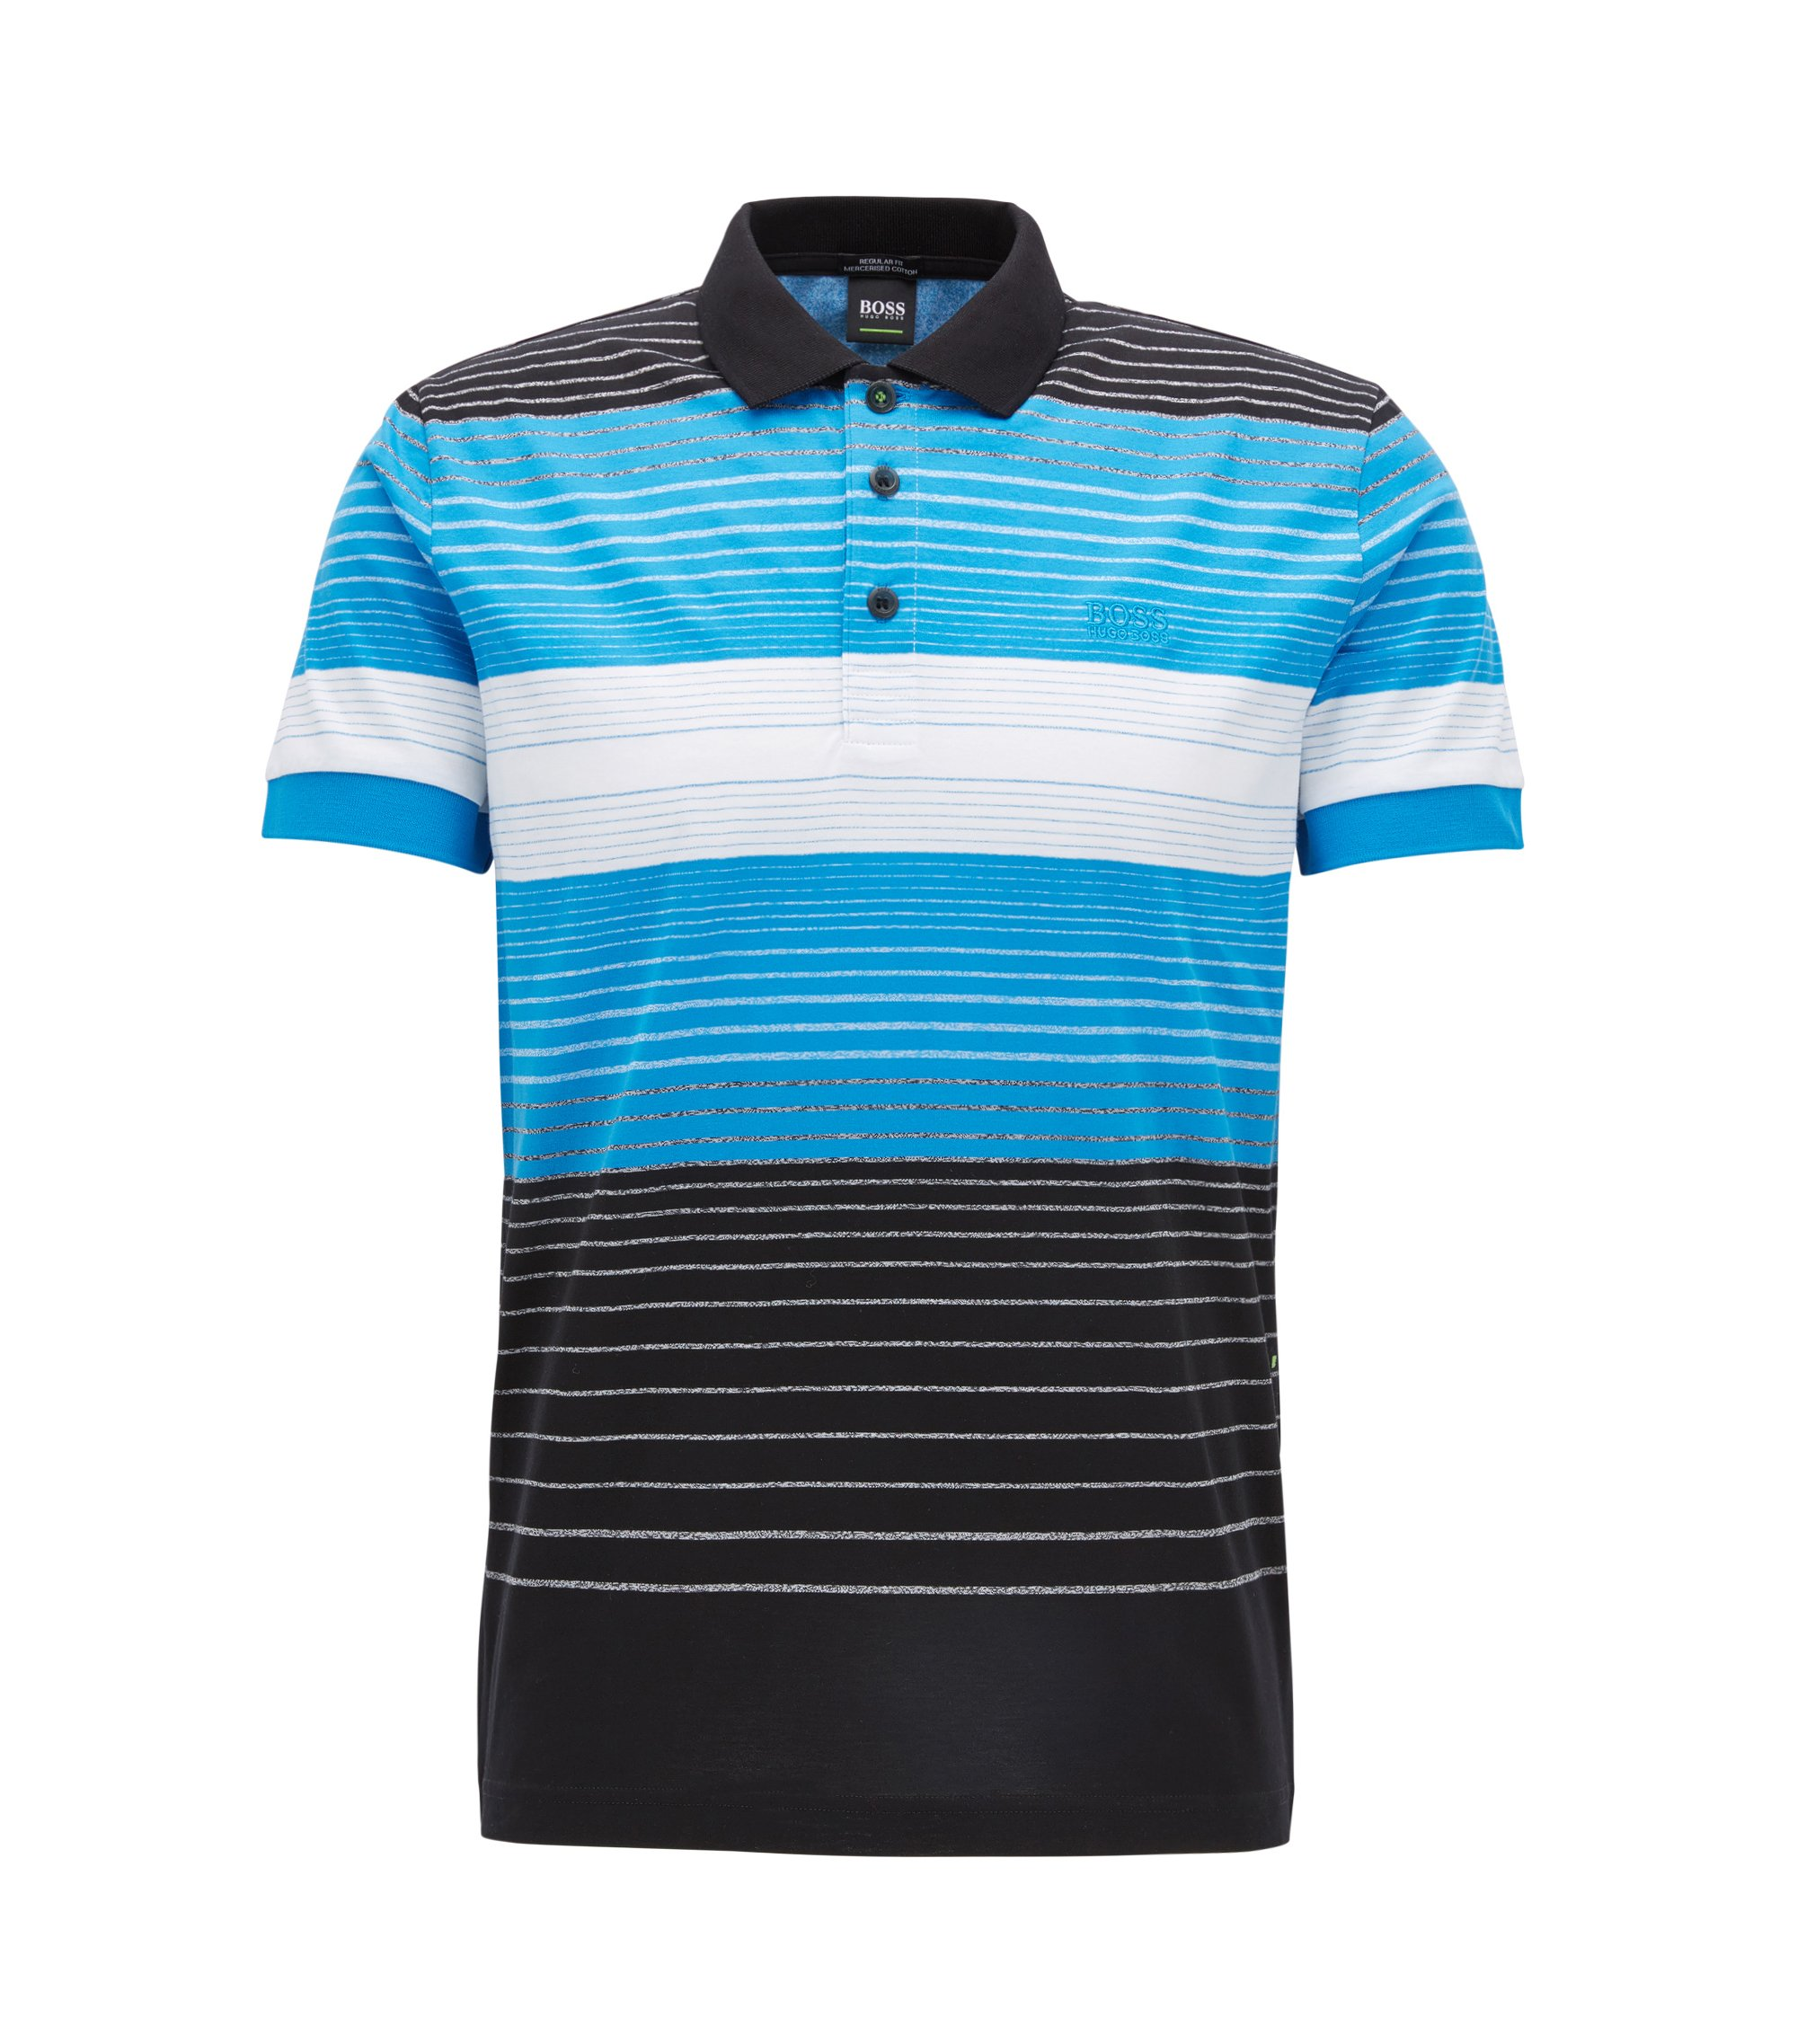 Regular-fit polo shirt in mercerised cotton, Patterned